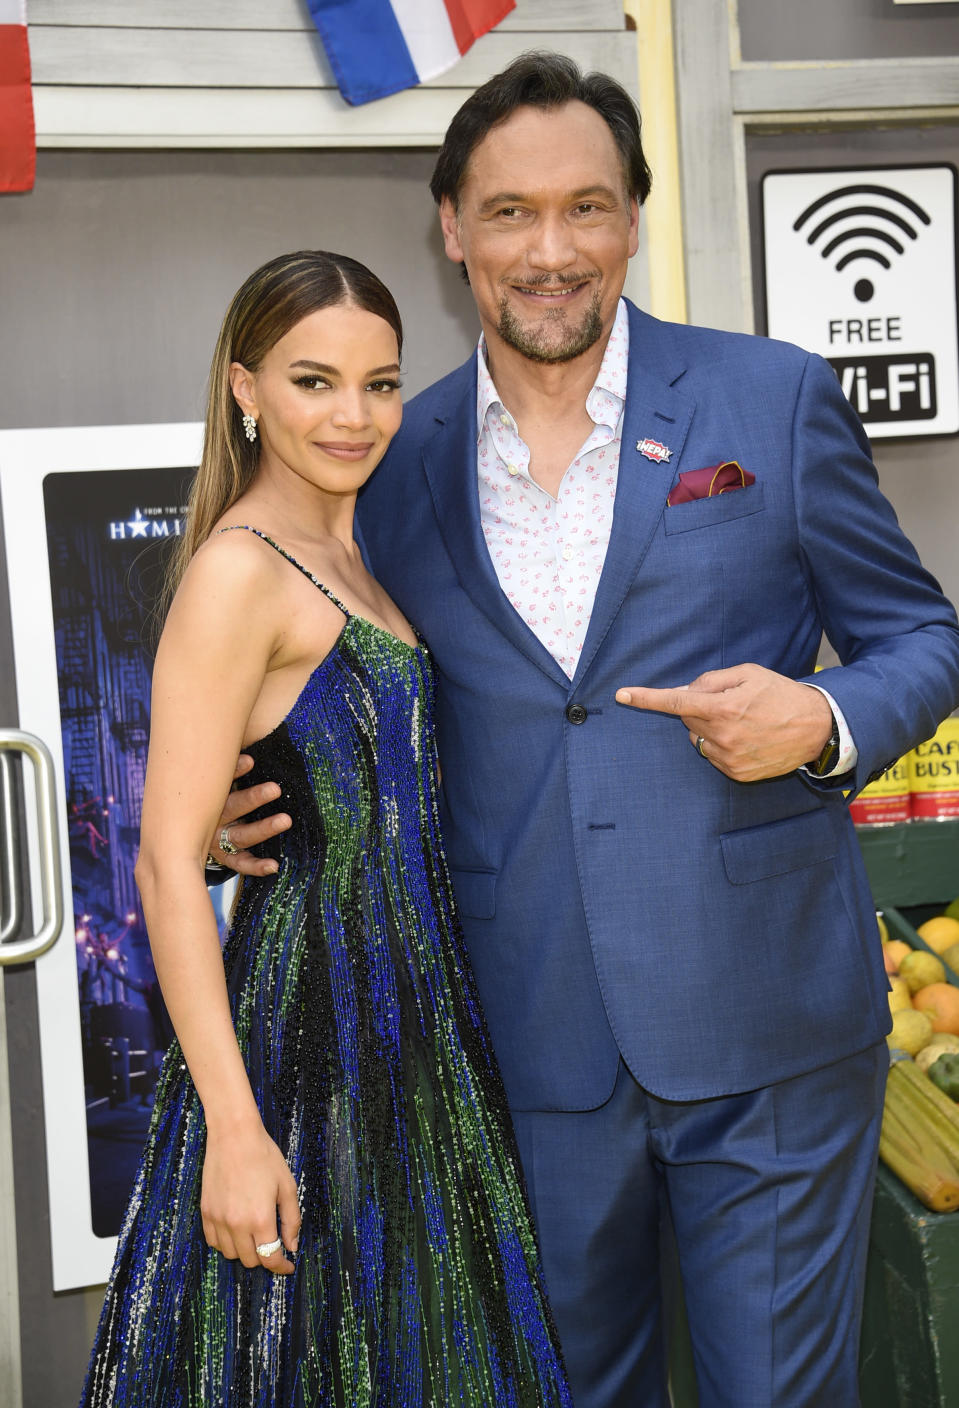 """Actors Leslie Grace, left, and Jimmy Smits pose at the 2021 Tribeca Film Festival opening night premiere of """"In the Heights"""" at the United Palace theater on Wednesday, June 9, 2021, in New York. (Photo by Evan Agostini/Invision/AP)"""